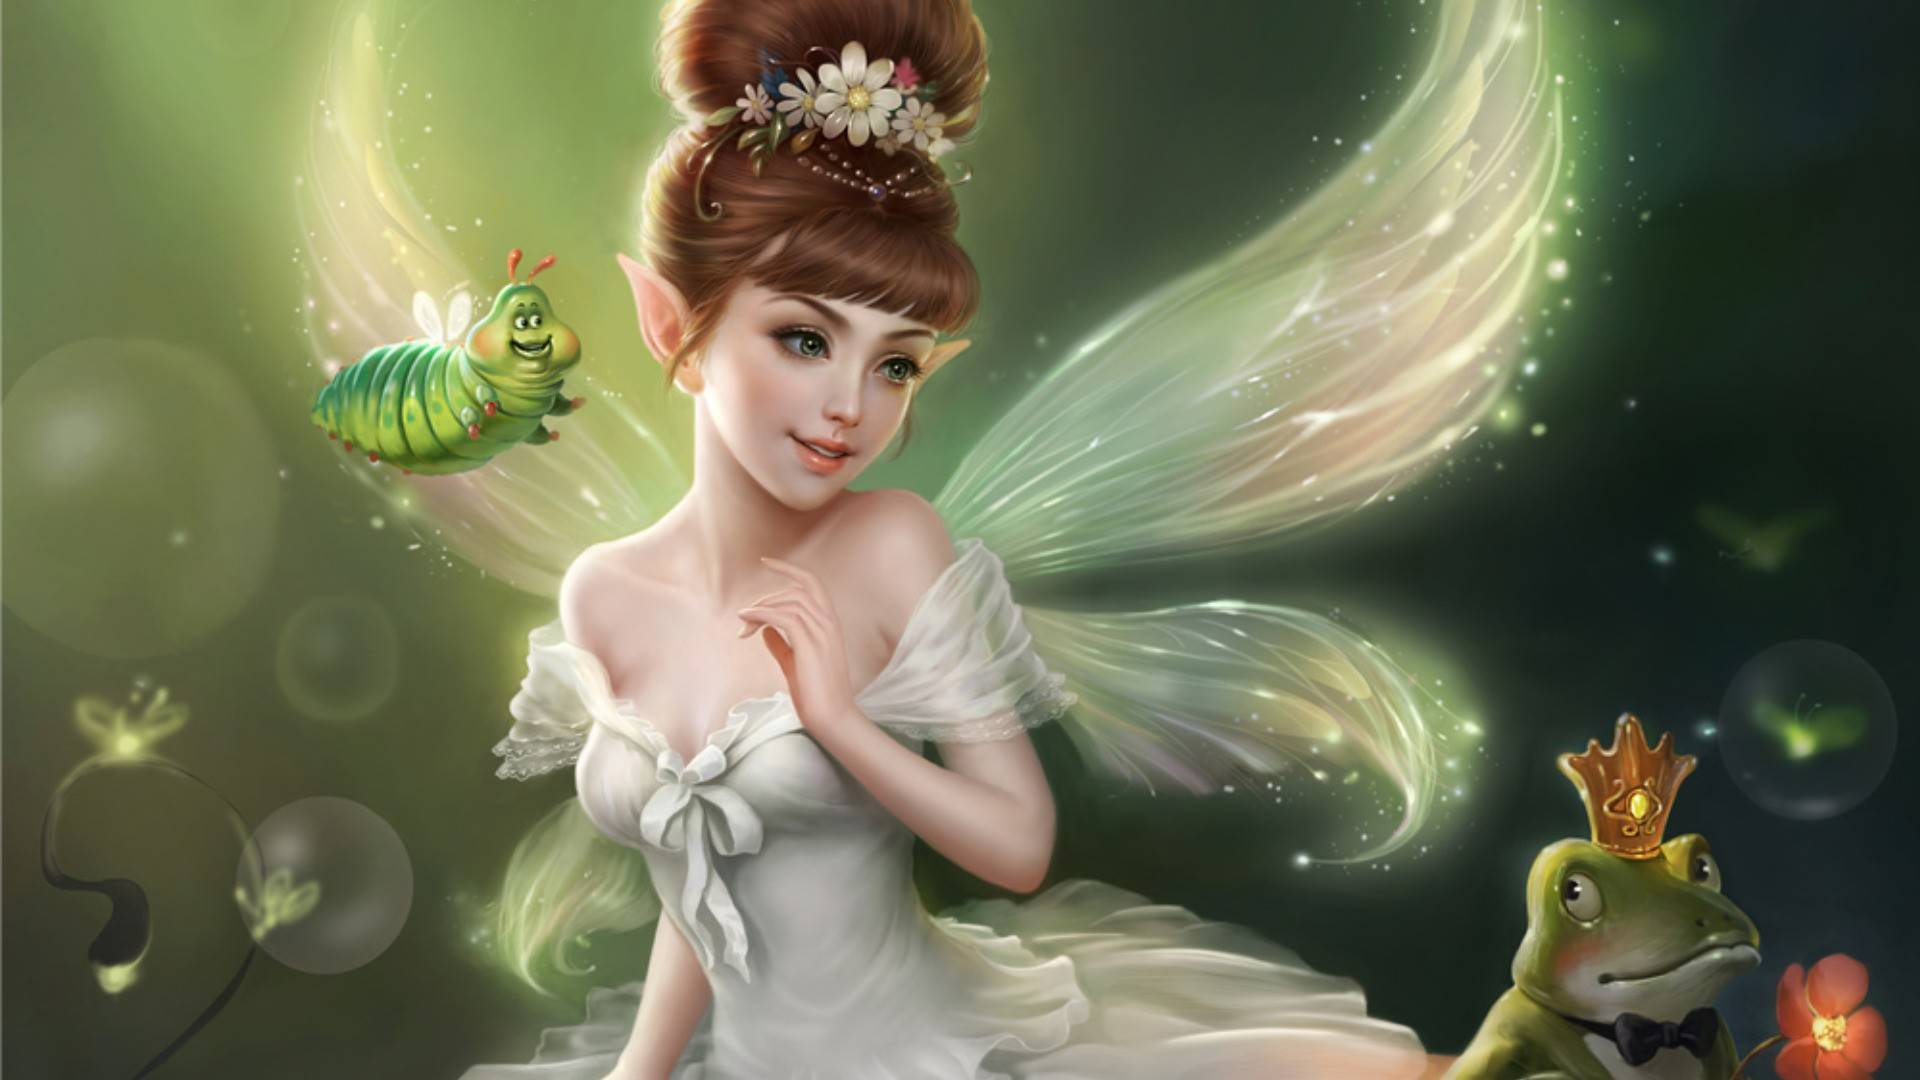 Fairies Fantasy 19201080 Wallpaper 2405072 1920x1080